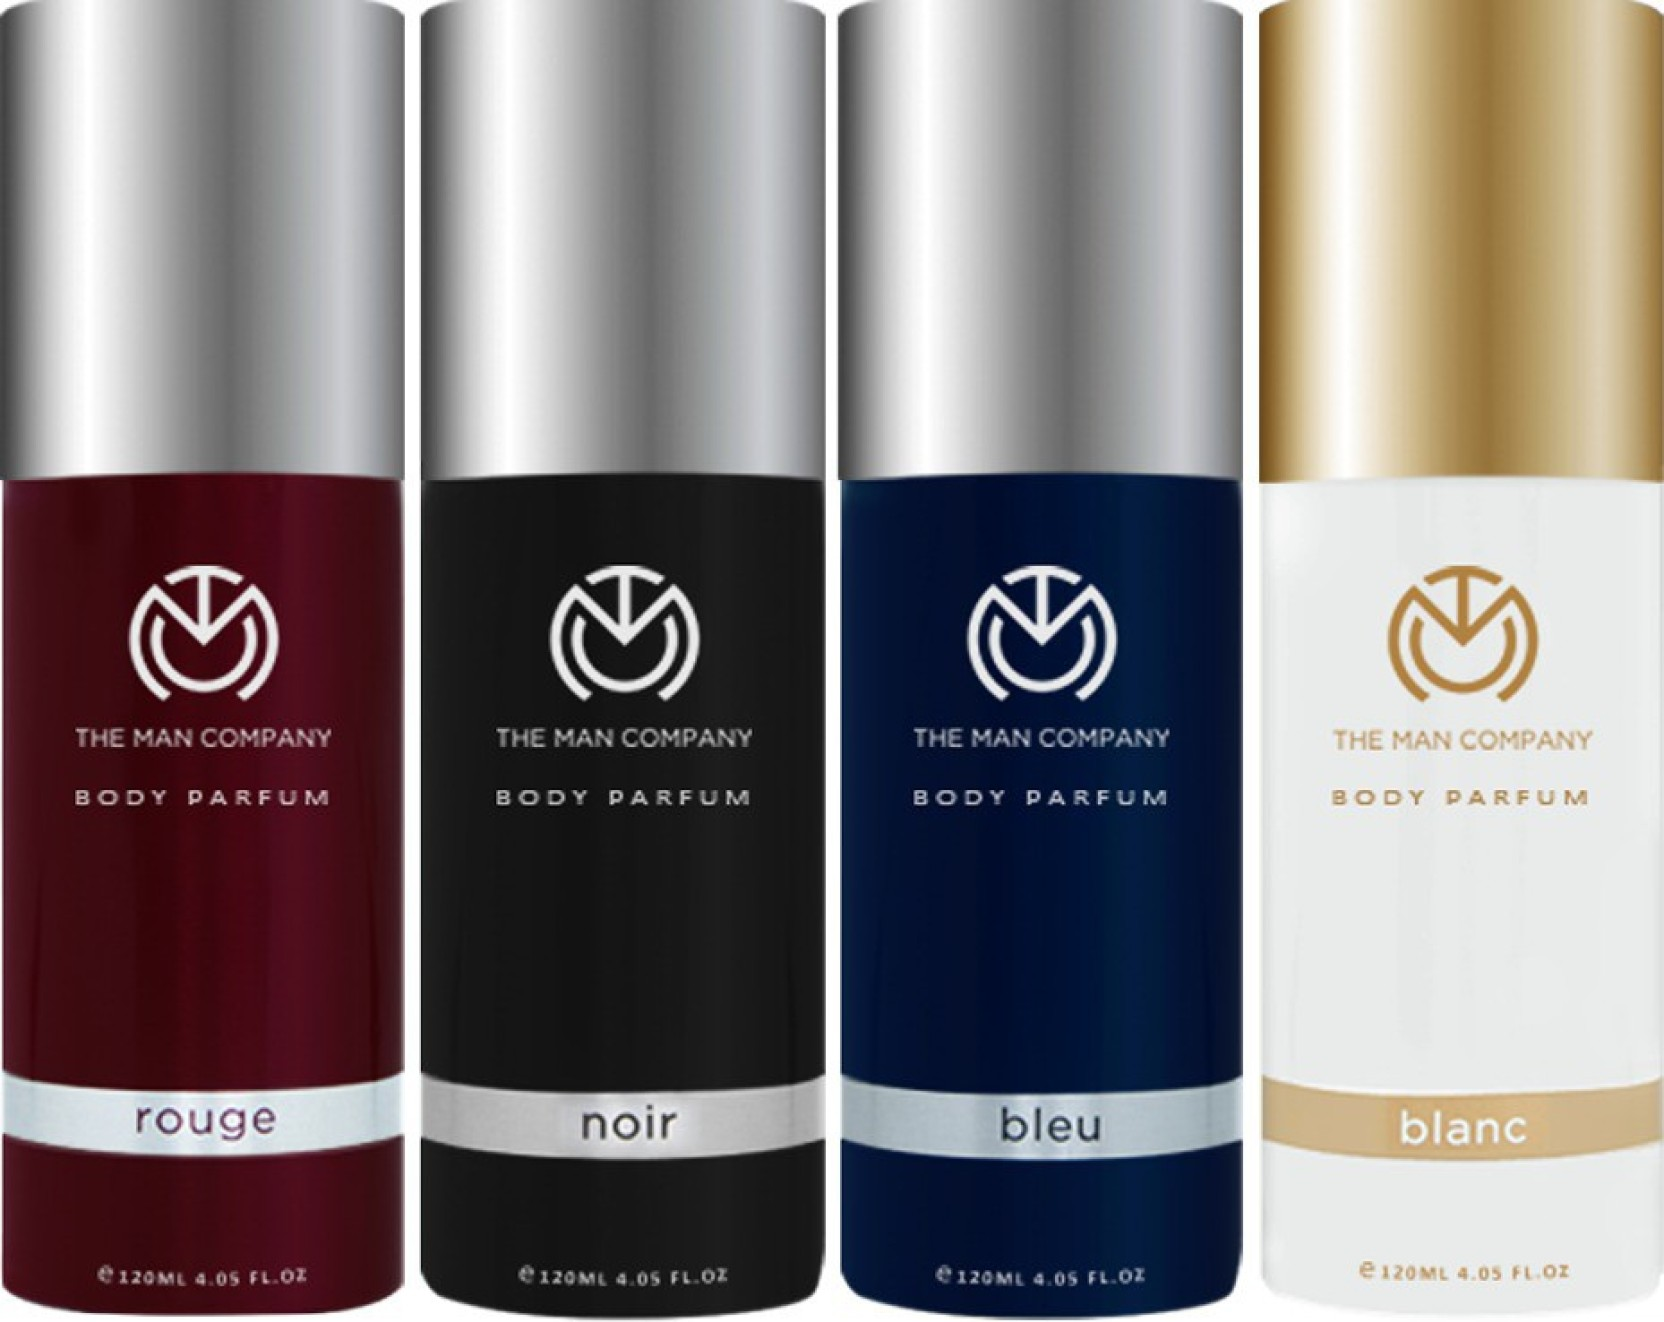 The Man Company Combo For Multifaceted Deodorant Spray Men Bri Yardley London Edt 125 Ml On Offer